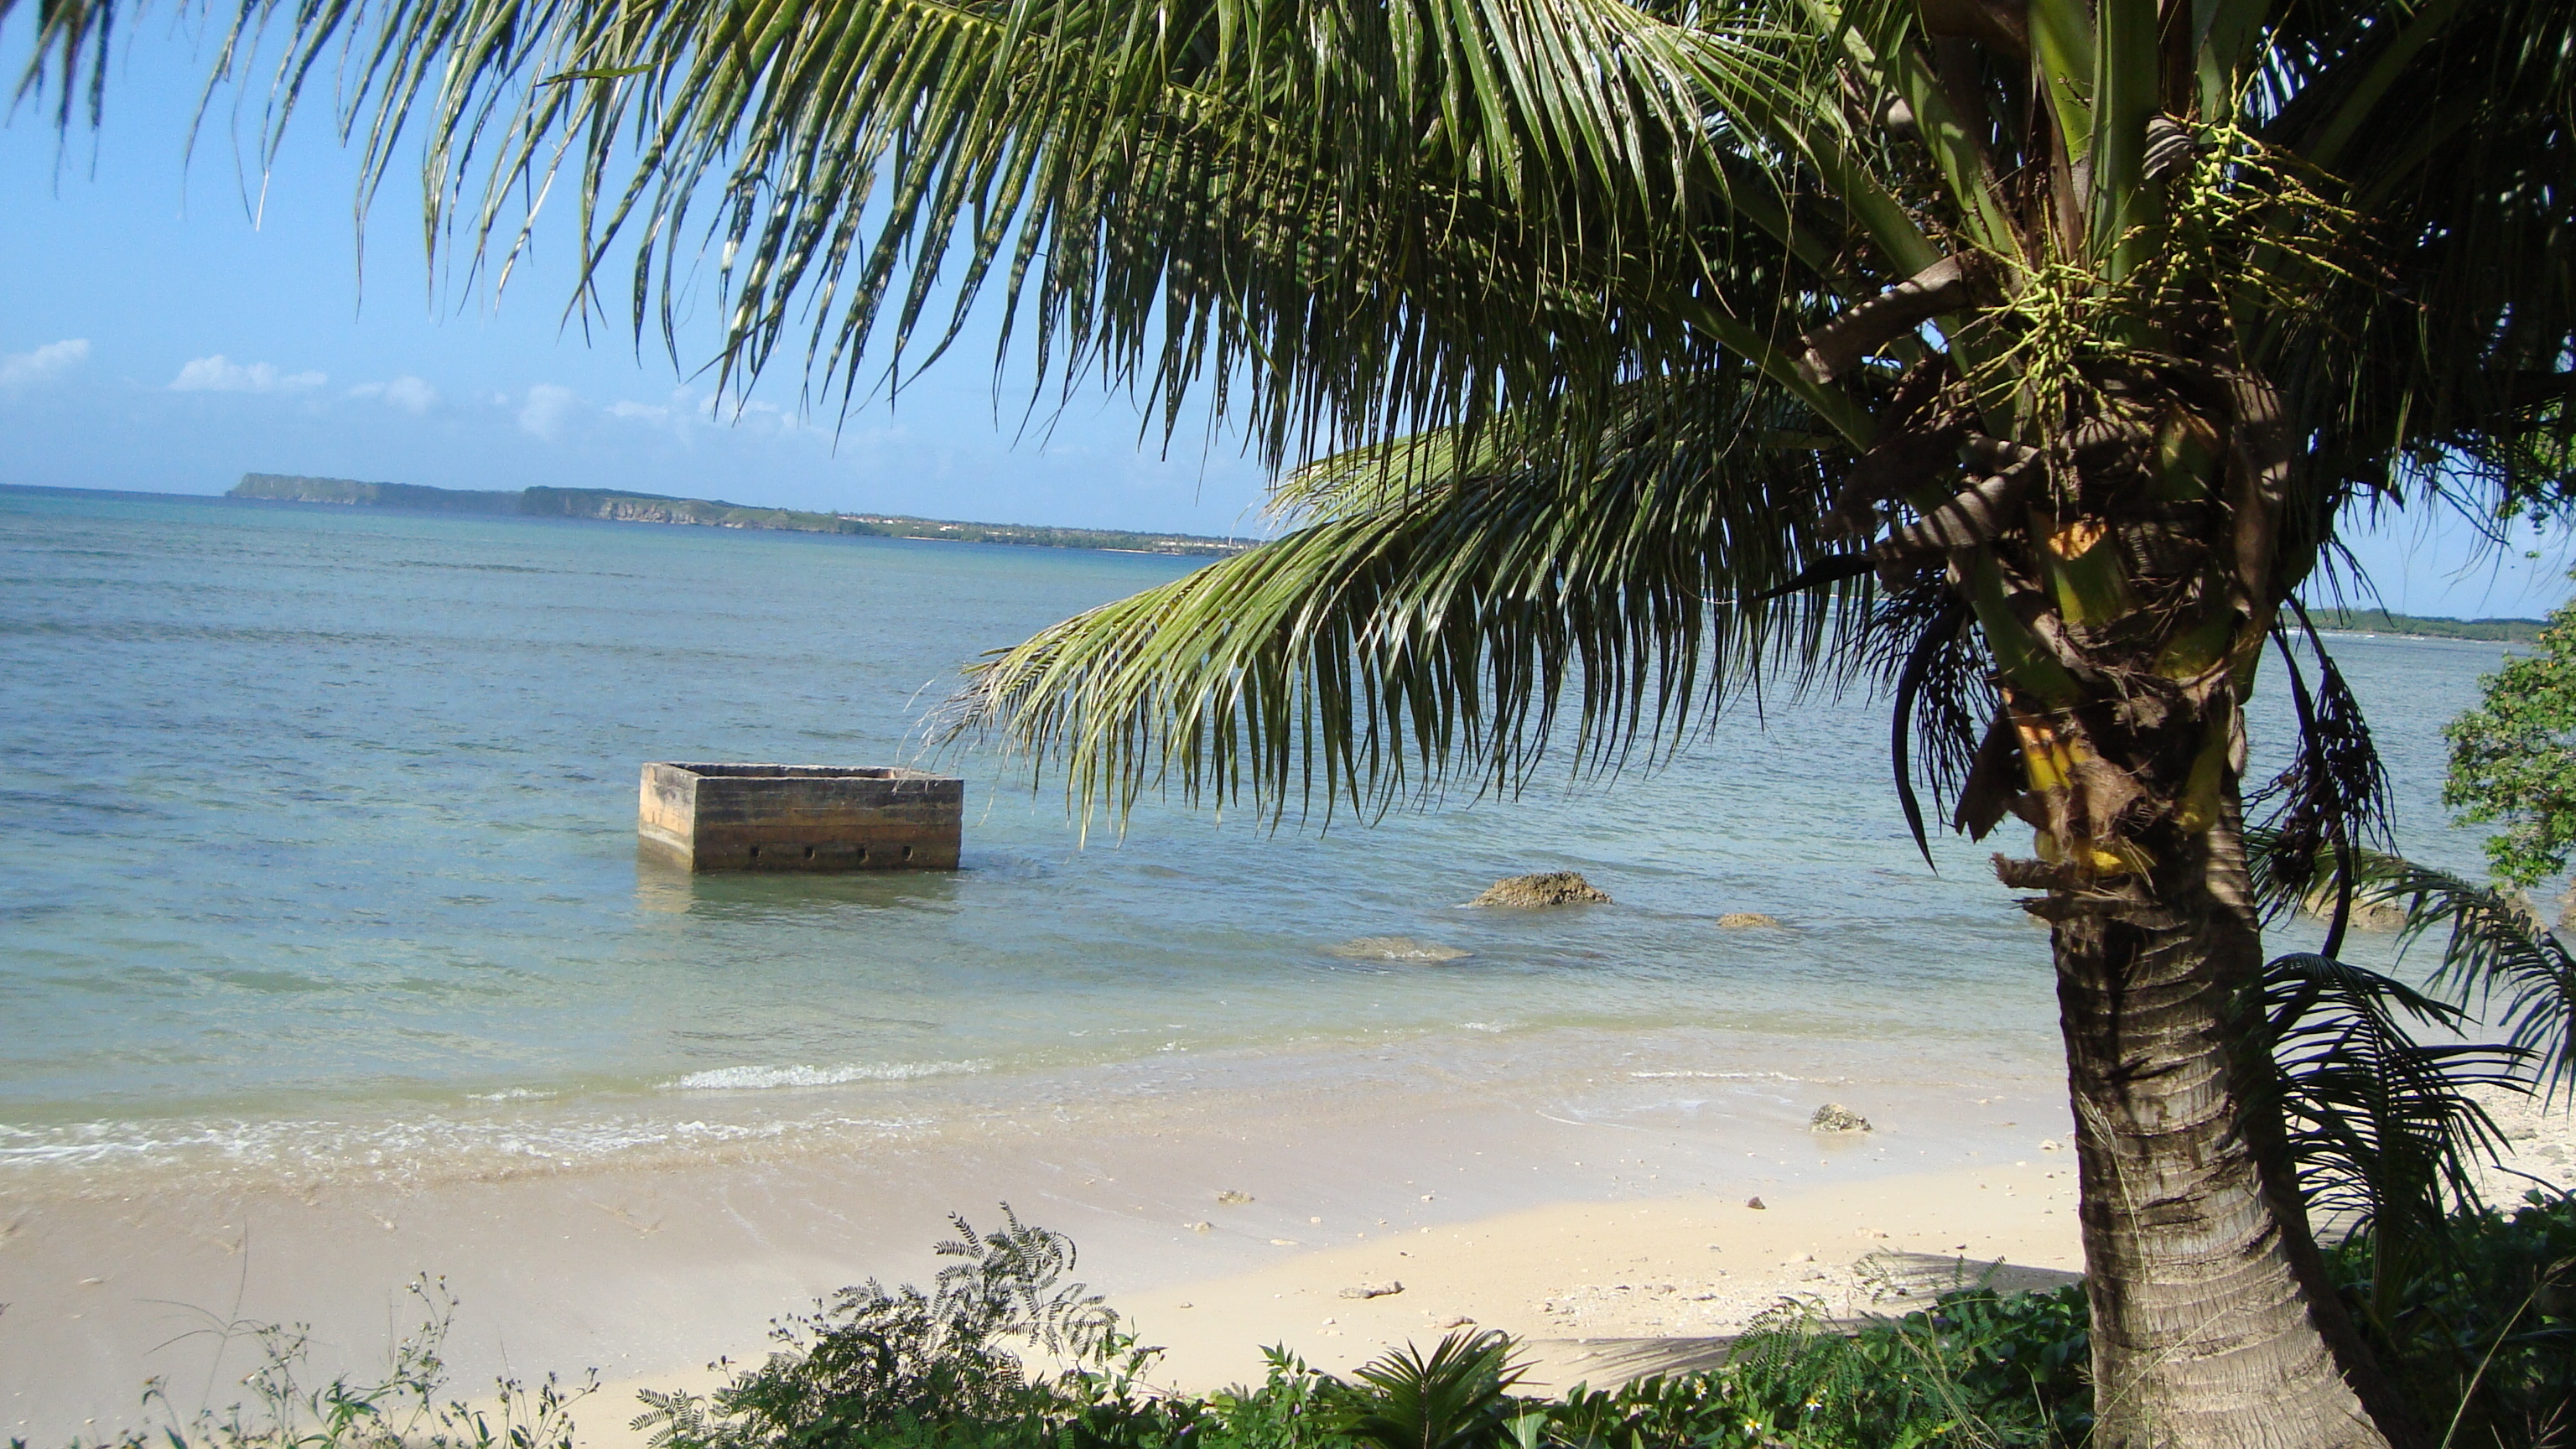 Agat Beach-- the Marine's landed here. Wouldn't you? (Photo credit: Wendie Burbridge)